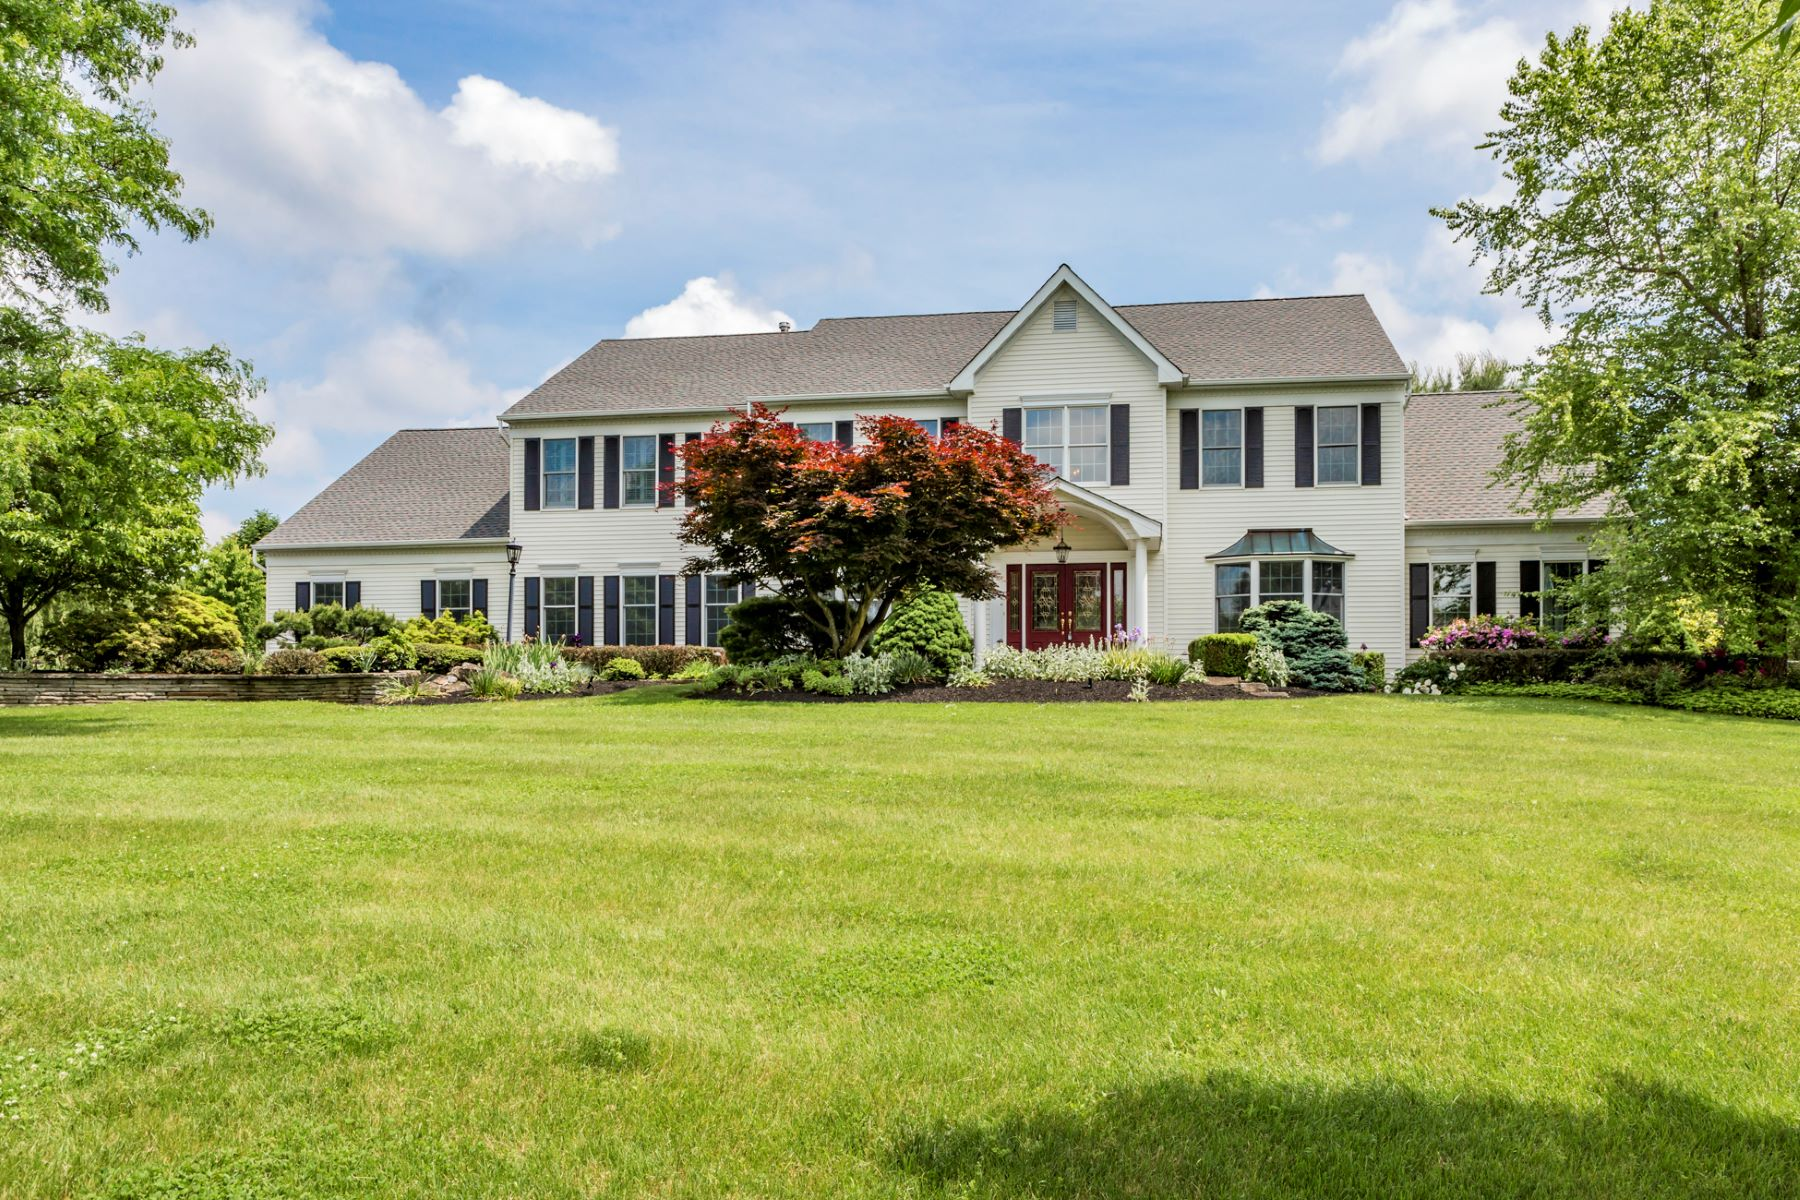 Maison unifamiliale pour l Vente à Setting The Stage For Summer Weekends 9 Silverthorn Lane, Belle Mead, New Jersey 08502 États-UnisDans/Autour: Montgomery Township